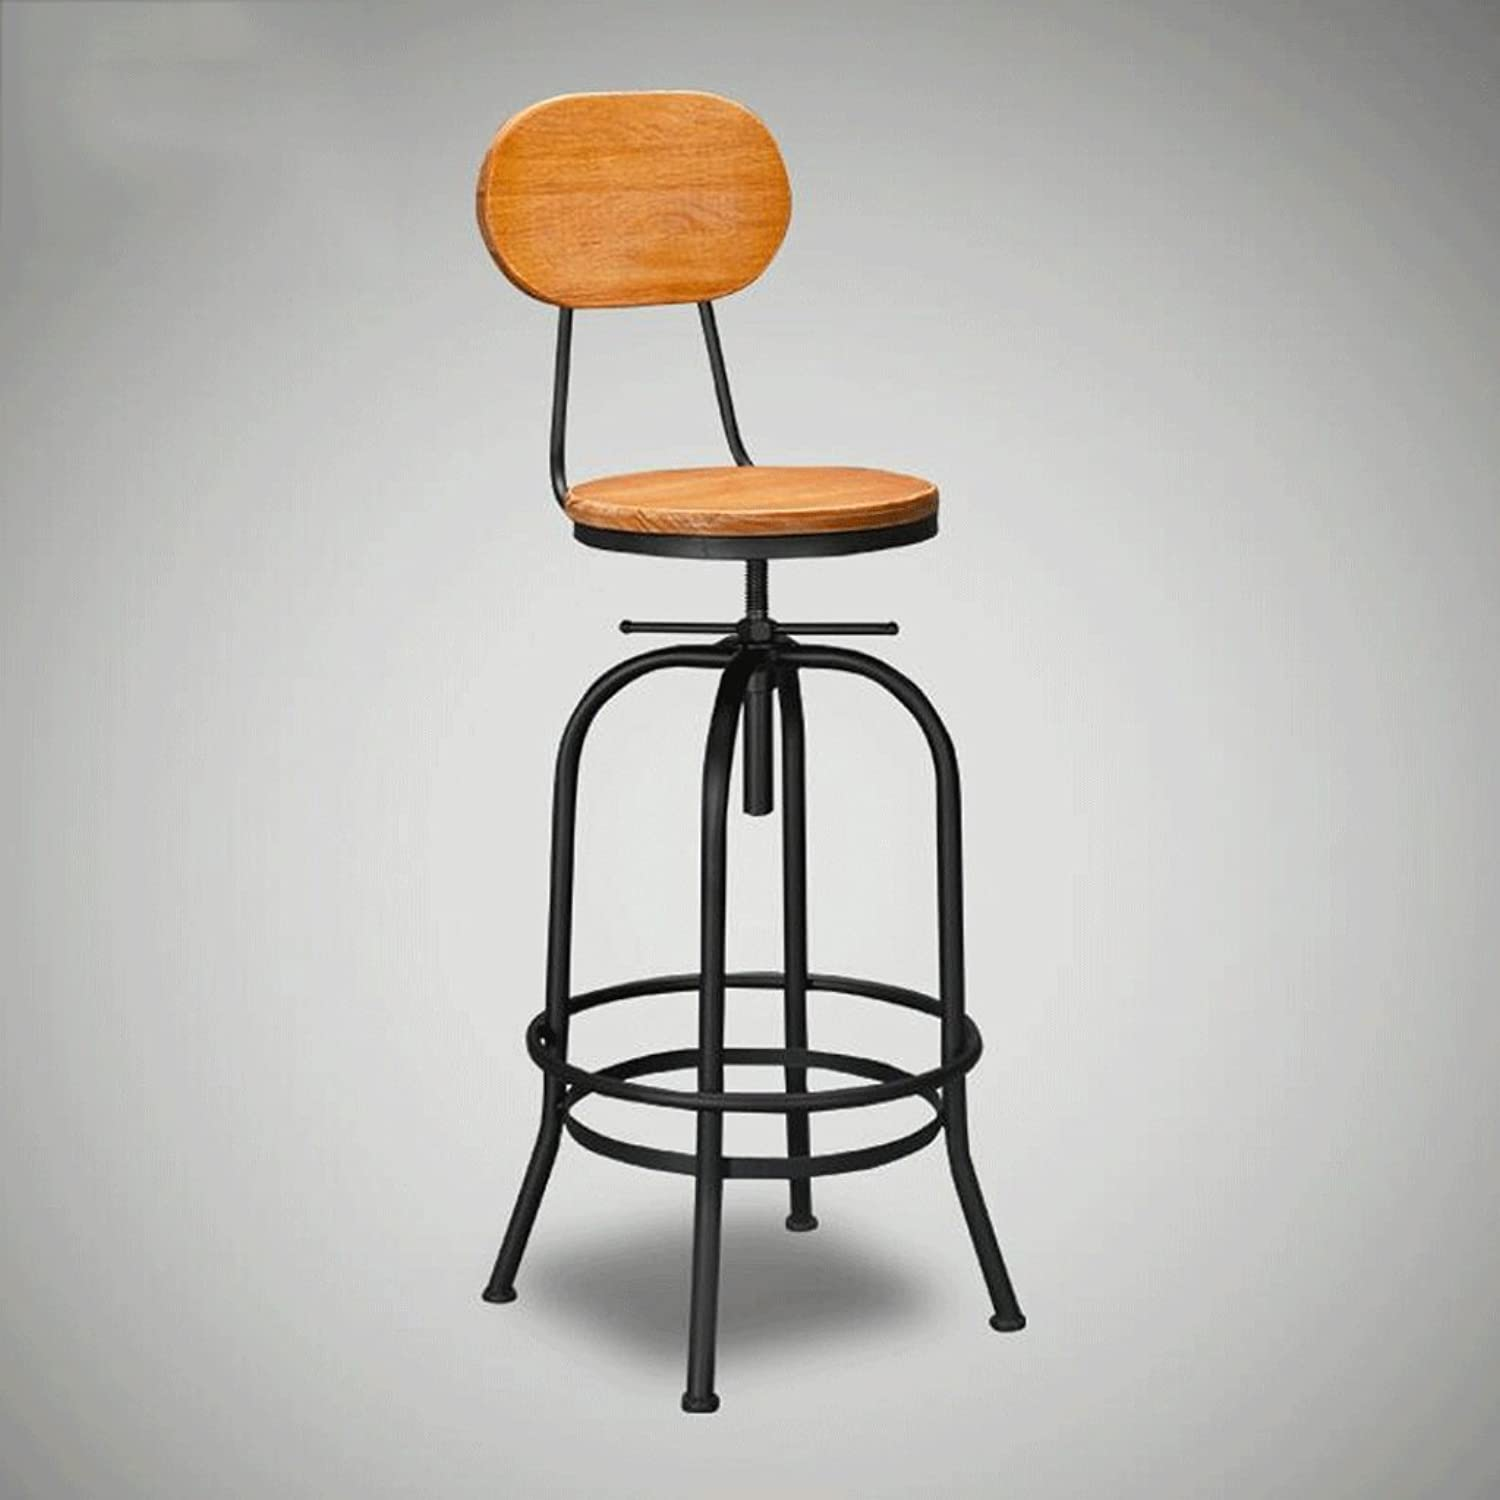 Barstool Can Be Adjusted to Sit High 68-90cm Solid Wood Backrest Chair Industrial Wind Restaurant Bar Stool Iron Leisure Chair Creative Stool